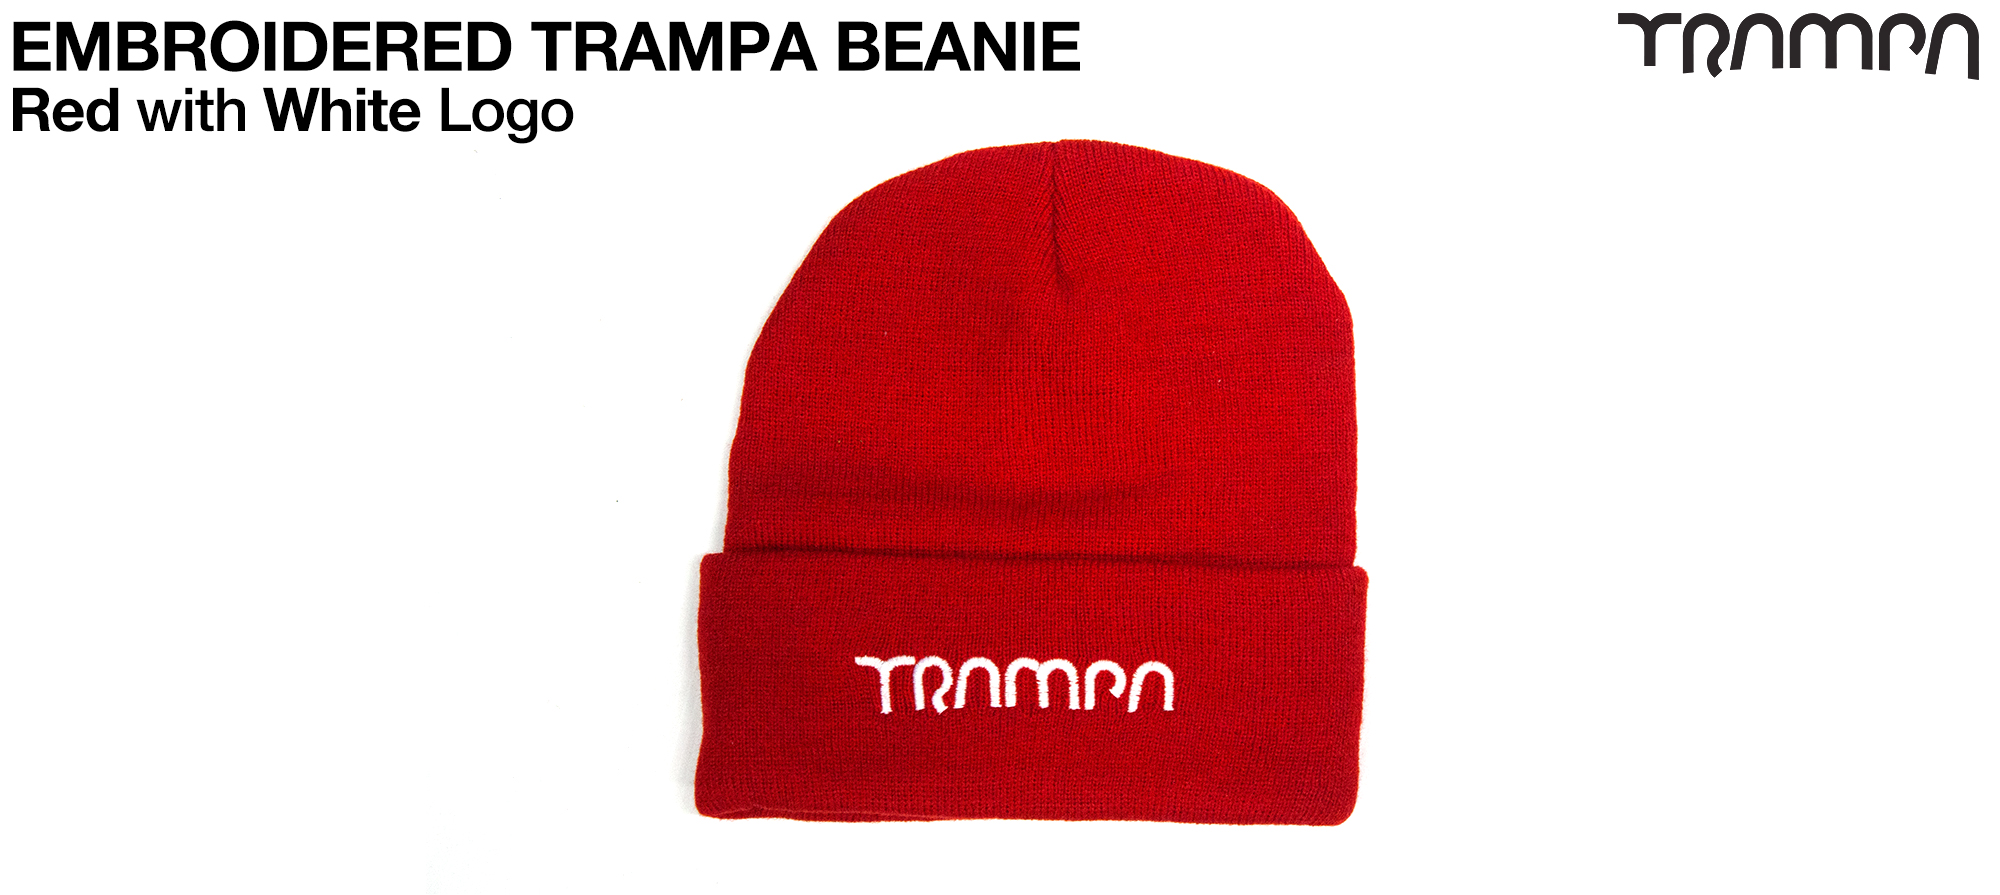 RED Woolie hat with White TRAMPA logo